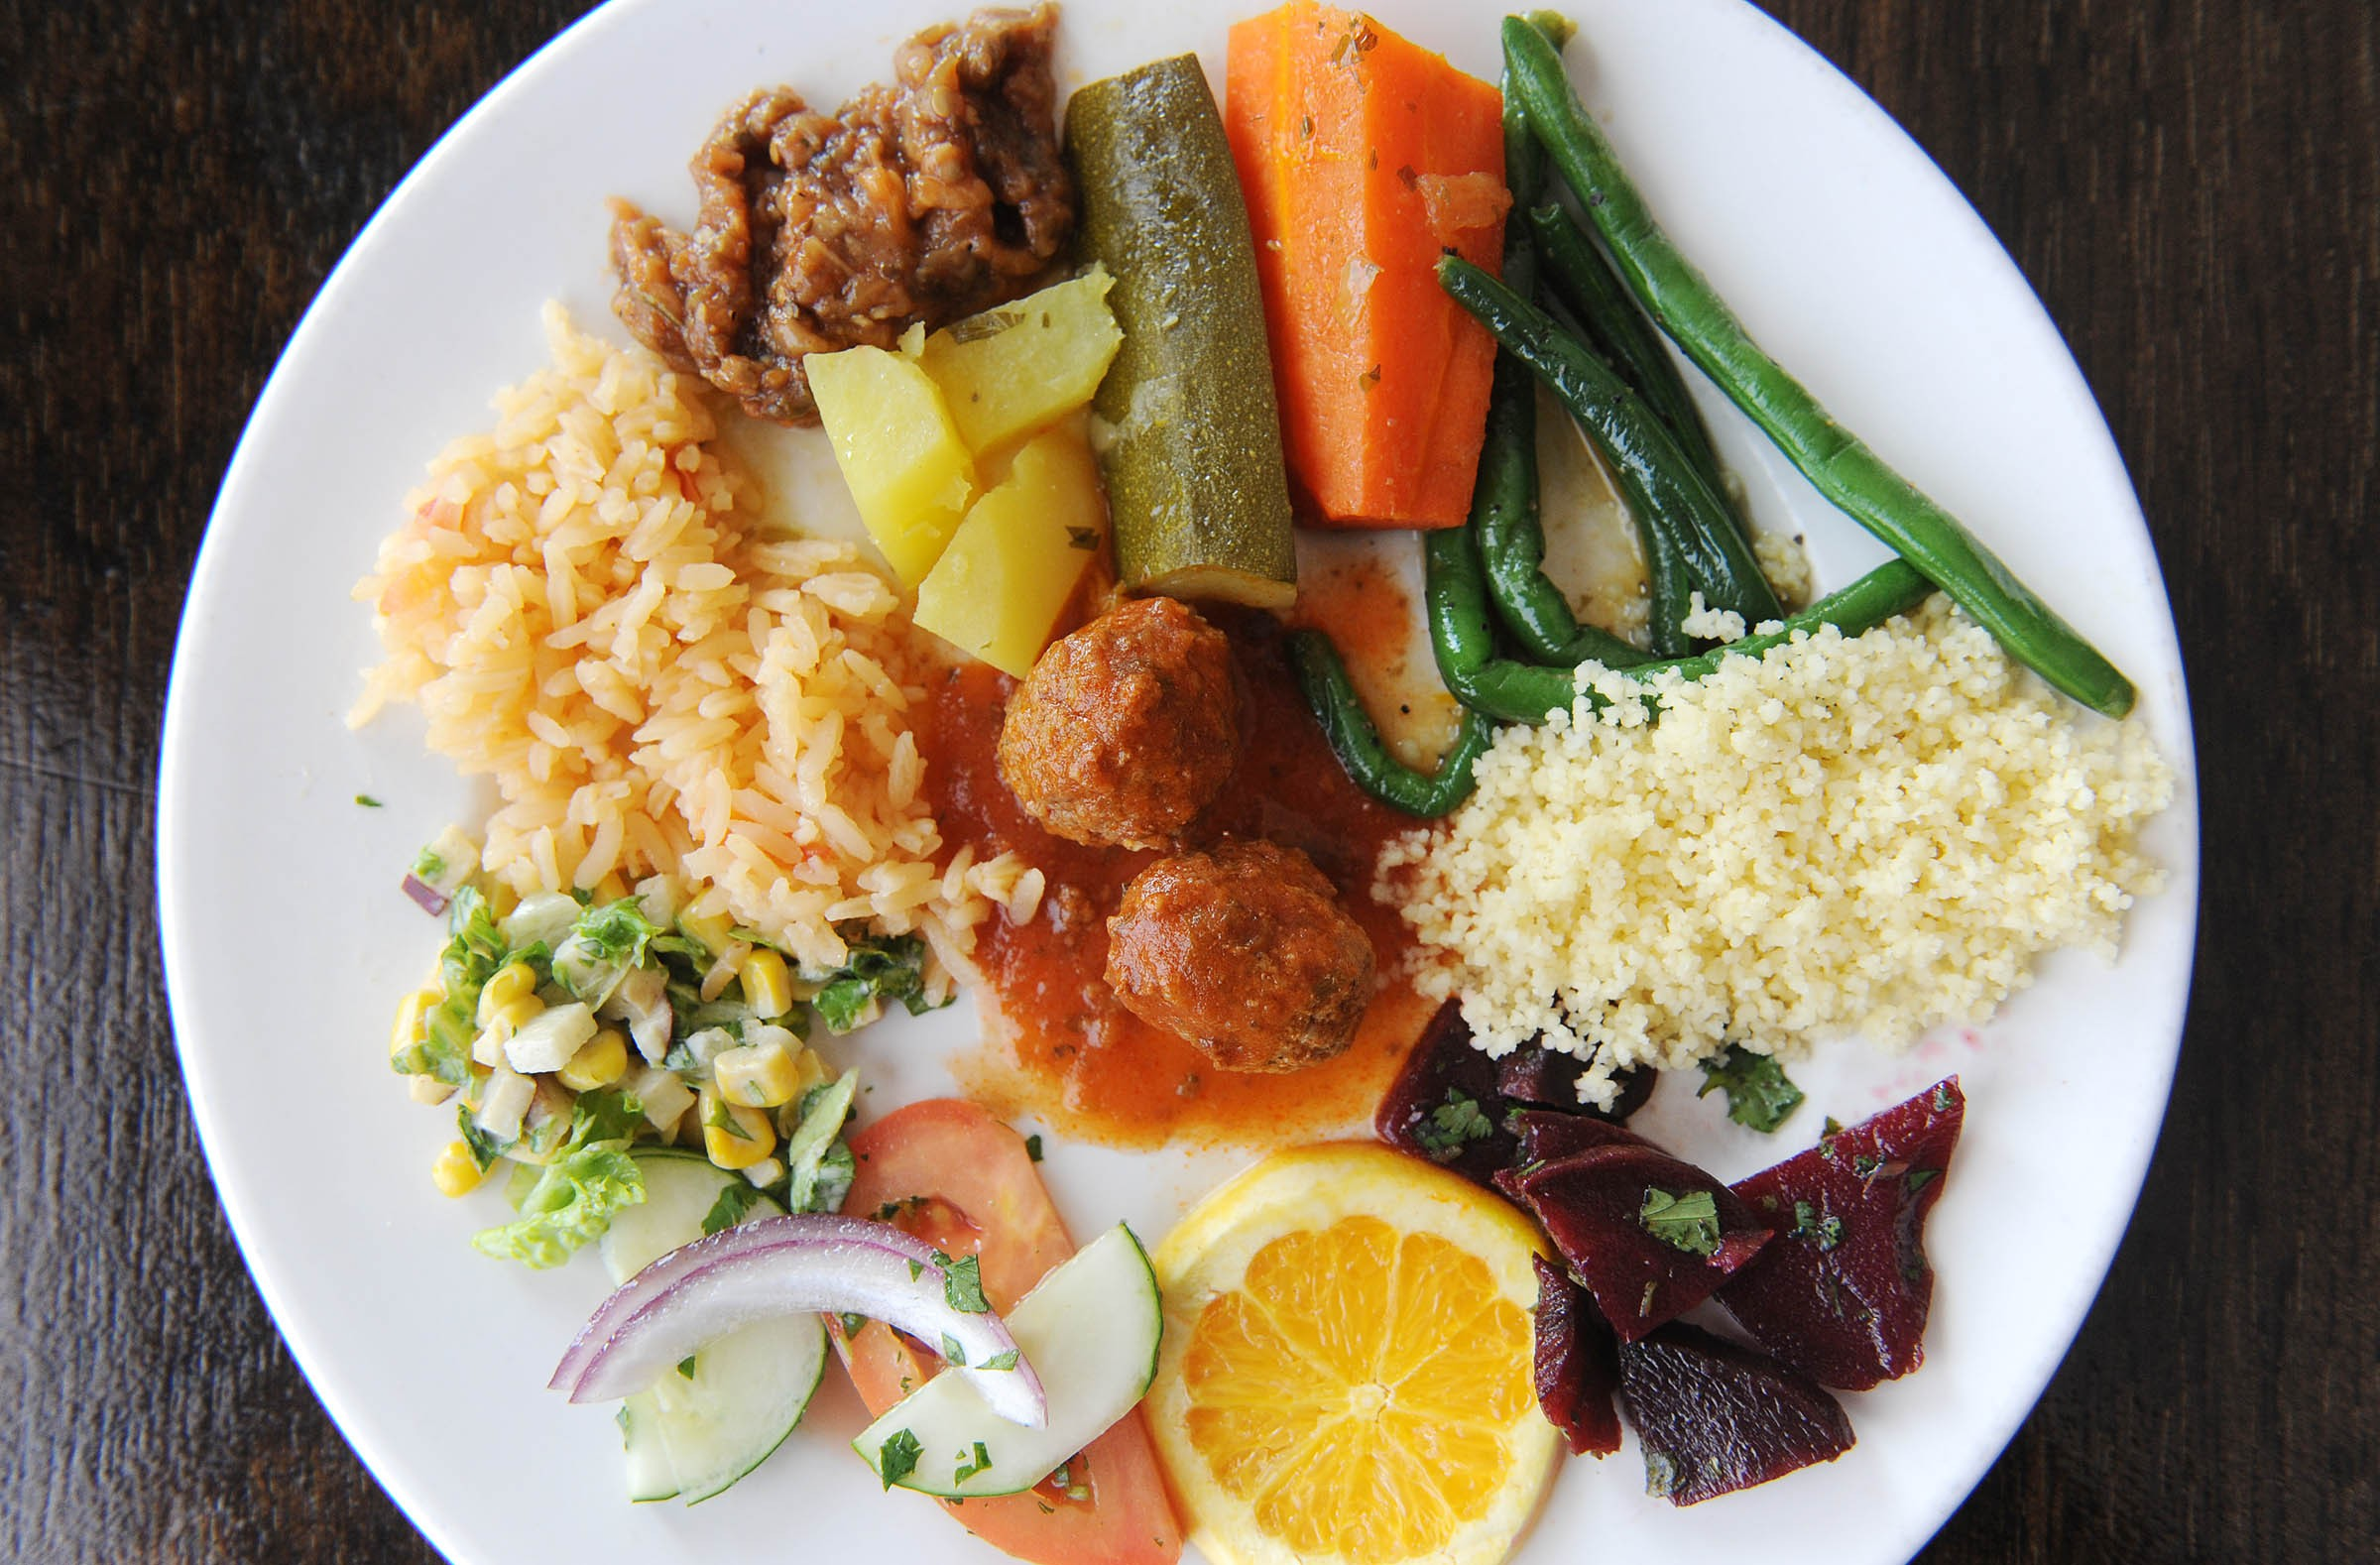 From the lunch buffet at Riad Moroccan Grill, green beans, beet salad, cucumber and tomatoes, apple salad, beef meatballs, potato stew, eggplant, rice, couscous, carrots and zuvvini make a flavorful meal for a reasonable price. - SCOTT ELMQUIST